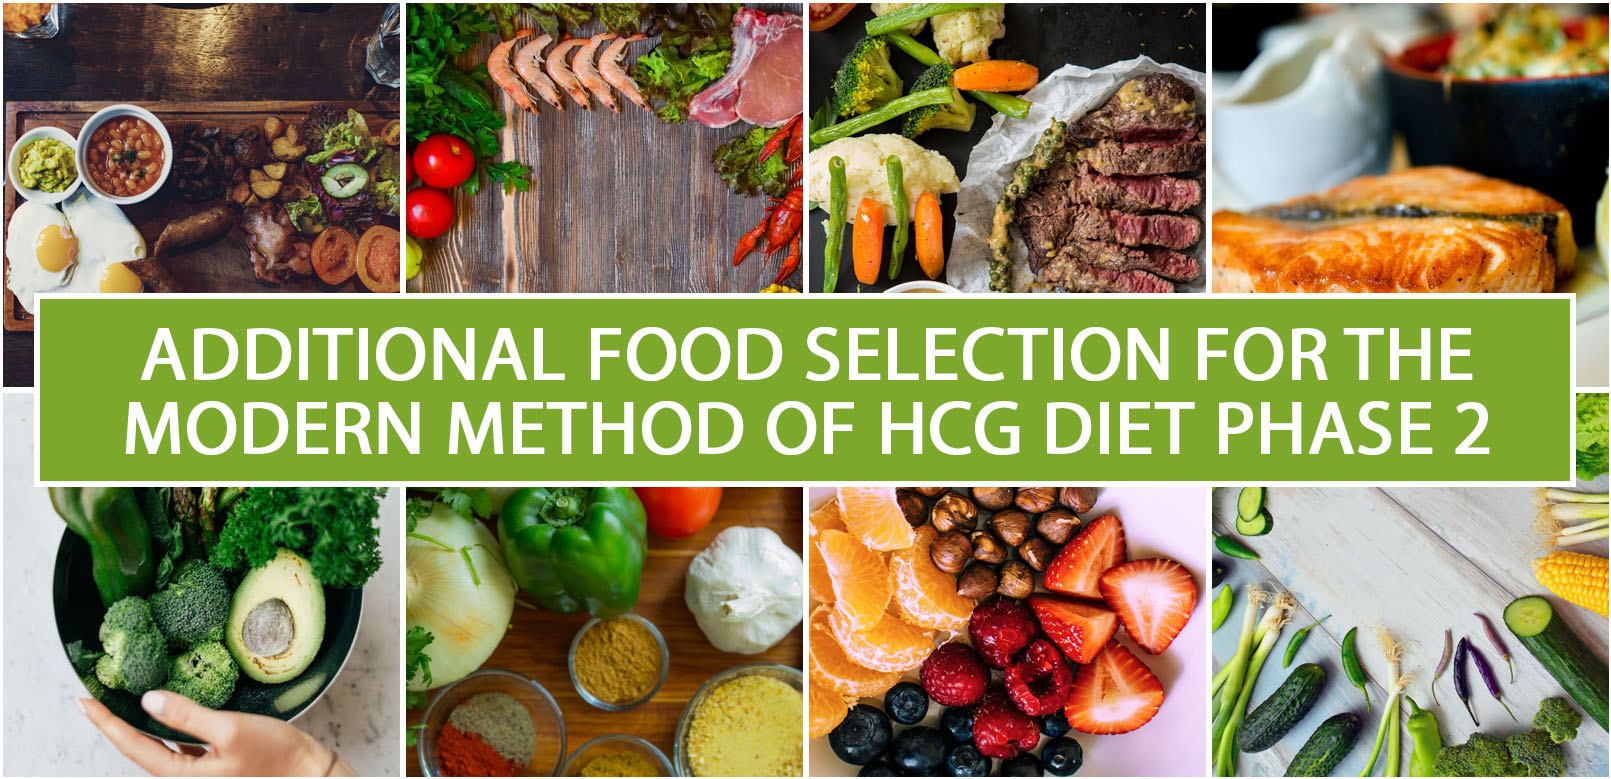 ADDITIONAL FOOD SELECTION FOR THE MODERN METHOD OF HCG DIET PHASE 2